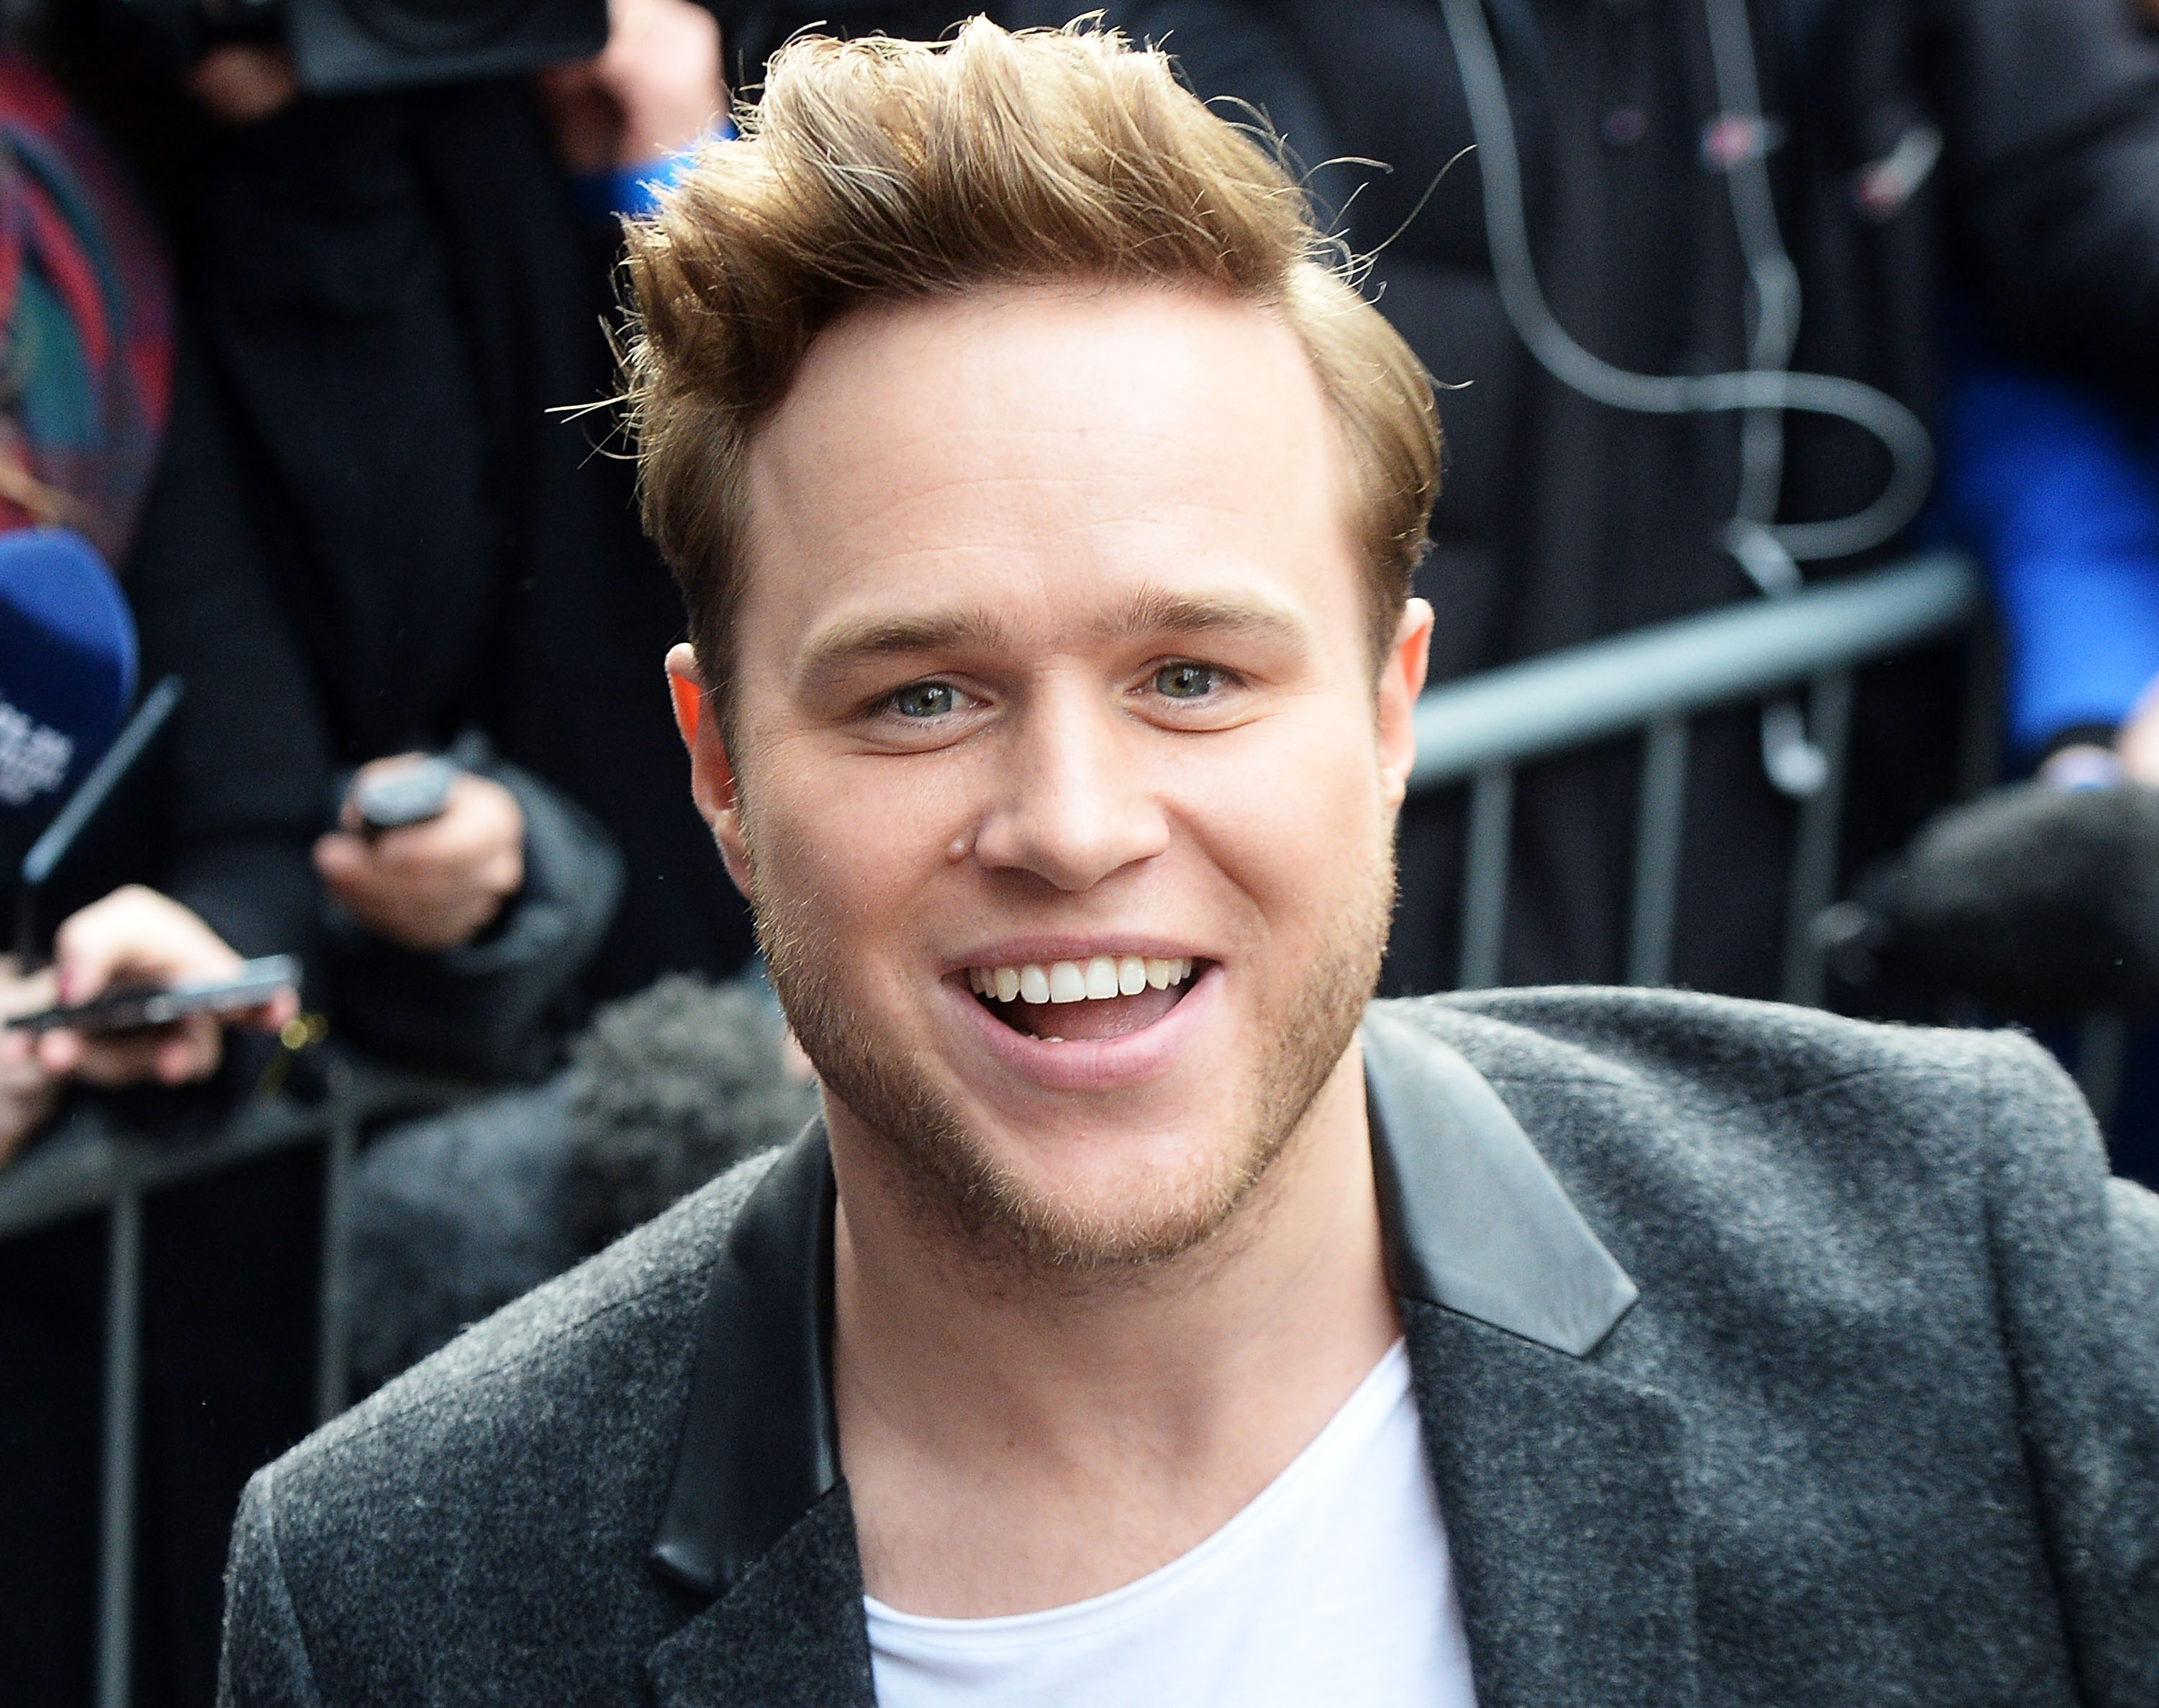 Pictures Of Olly Murs